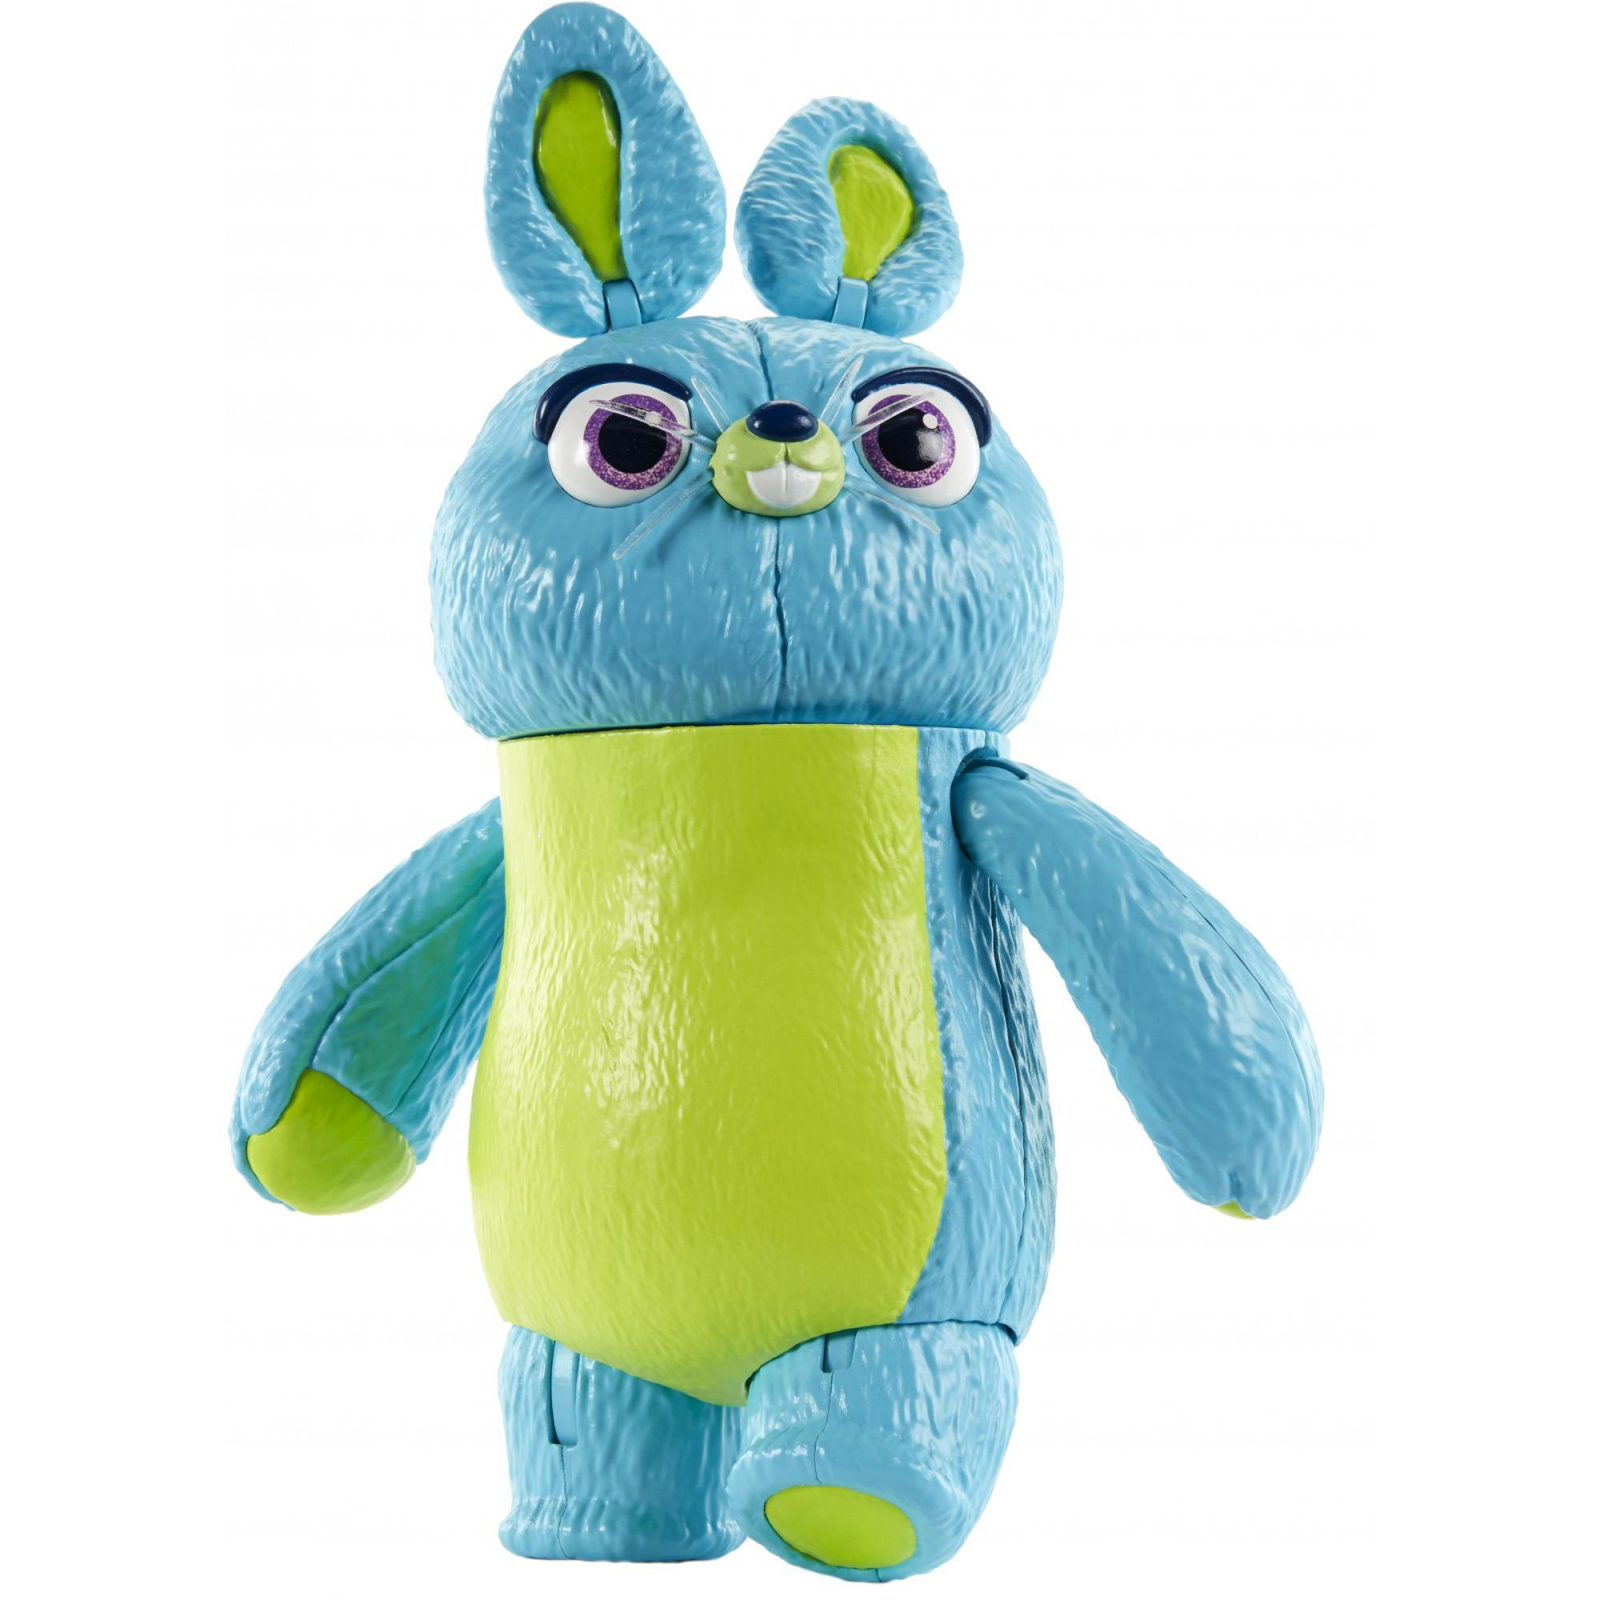 Disney Pixar Toy Story 4 Collectible Action Figure - Bunny